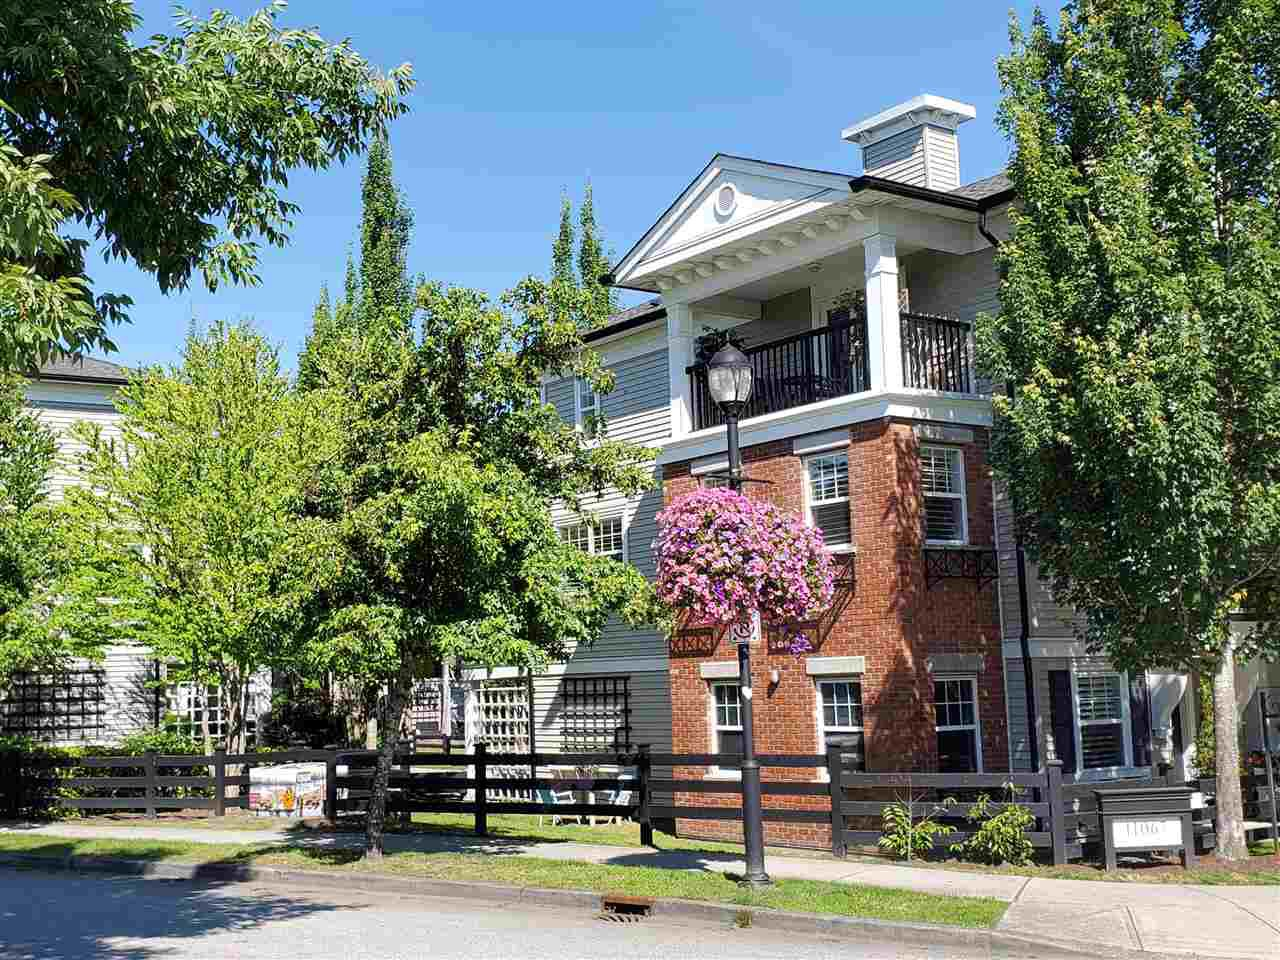 """Main Photo: 30 11067 BARNSTON VIEW Road in Pitt Meadows: South Meadows Townhouse for sale in """"COHO"""" : MLS®# R2476146"""